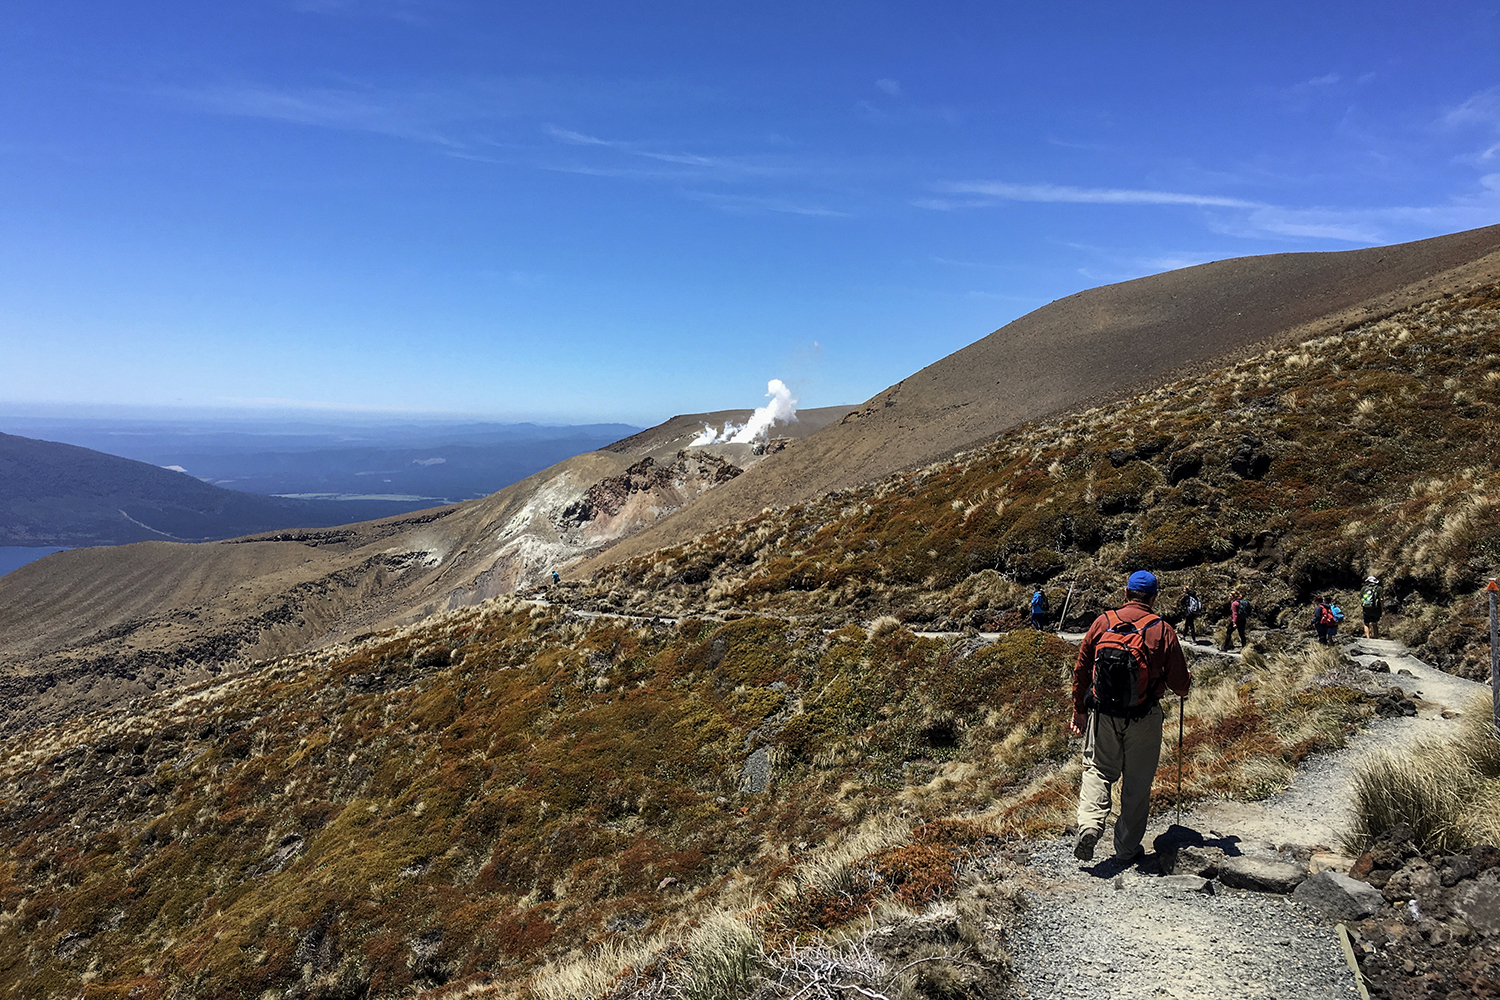 Special to the Democrat-Gazette/Karen E. Segrave11/24/15Mike McCall navigates a set of switchbacks on the descent from the highest point, the Red Crater which sits at 1886 meters, on the Alpine Crossing in Tongariro National Park, New Zealand. The crossing descends nearly 1000 meters with no break from here out.